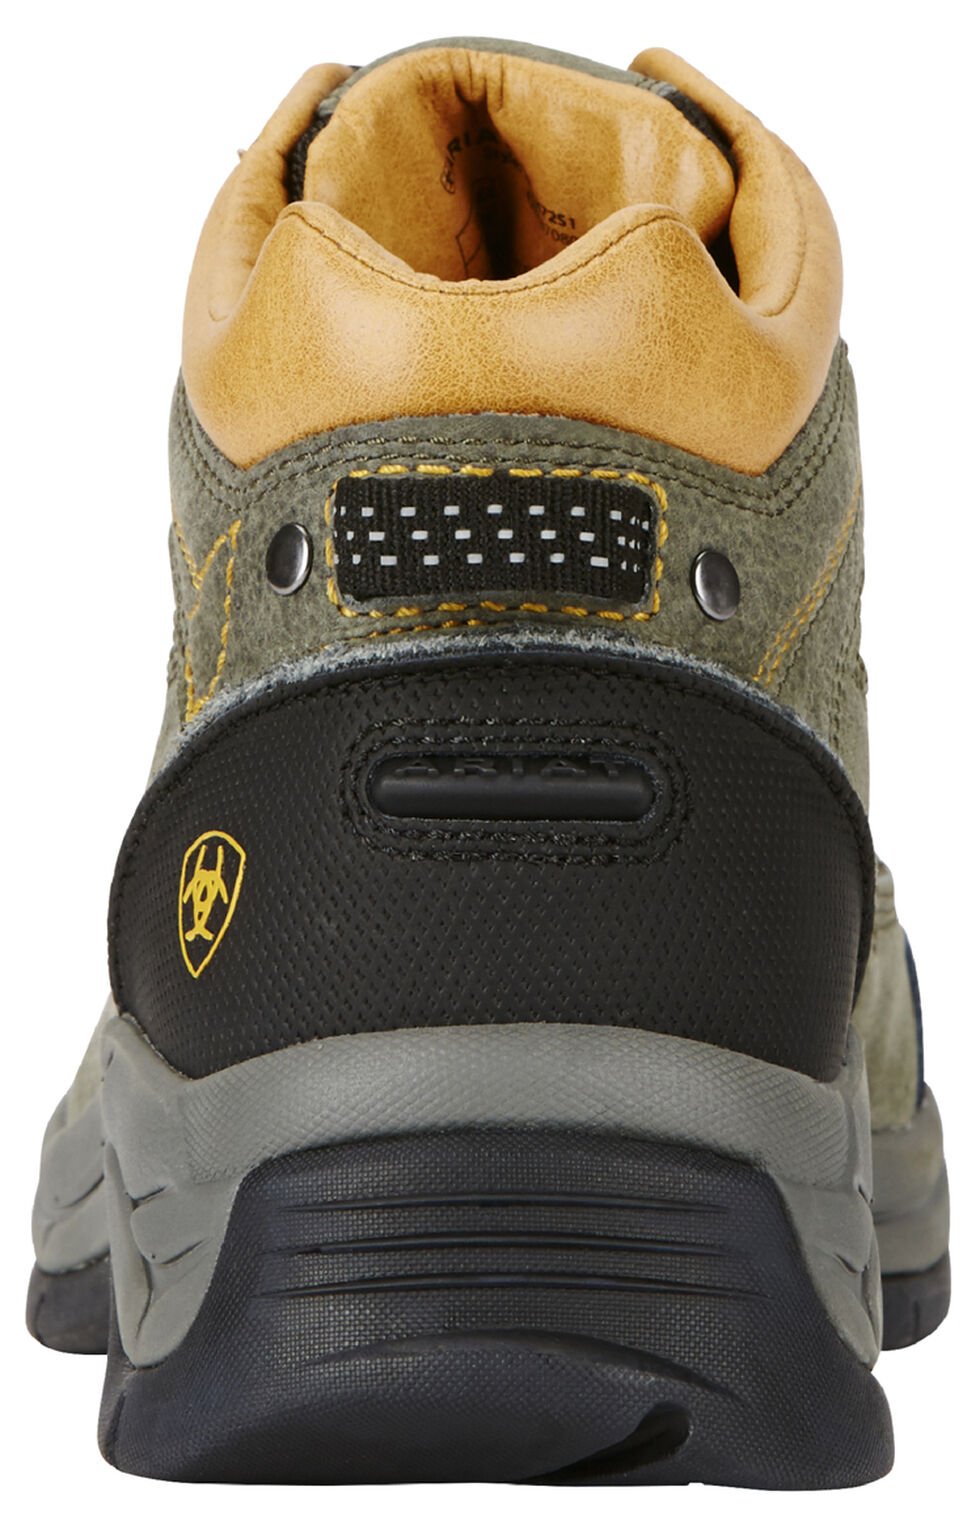 Ariat Men's Olive Terrain Pro Performance Boots - Round Toe, Olive, hi-res